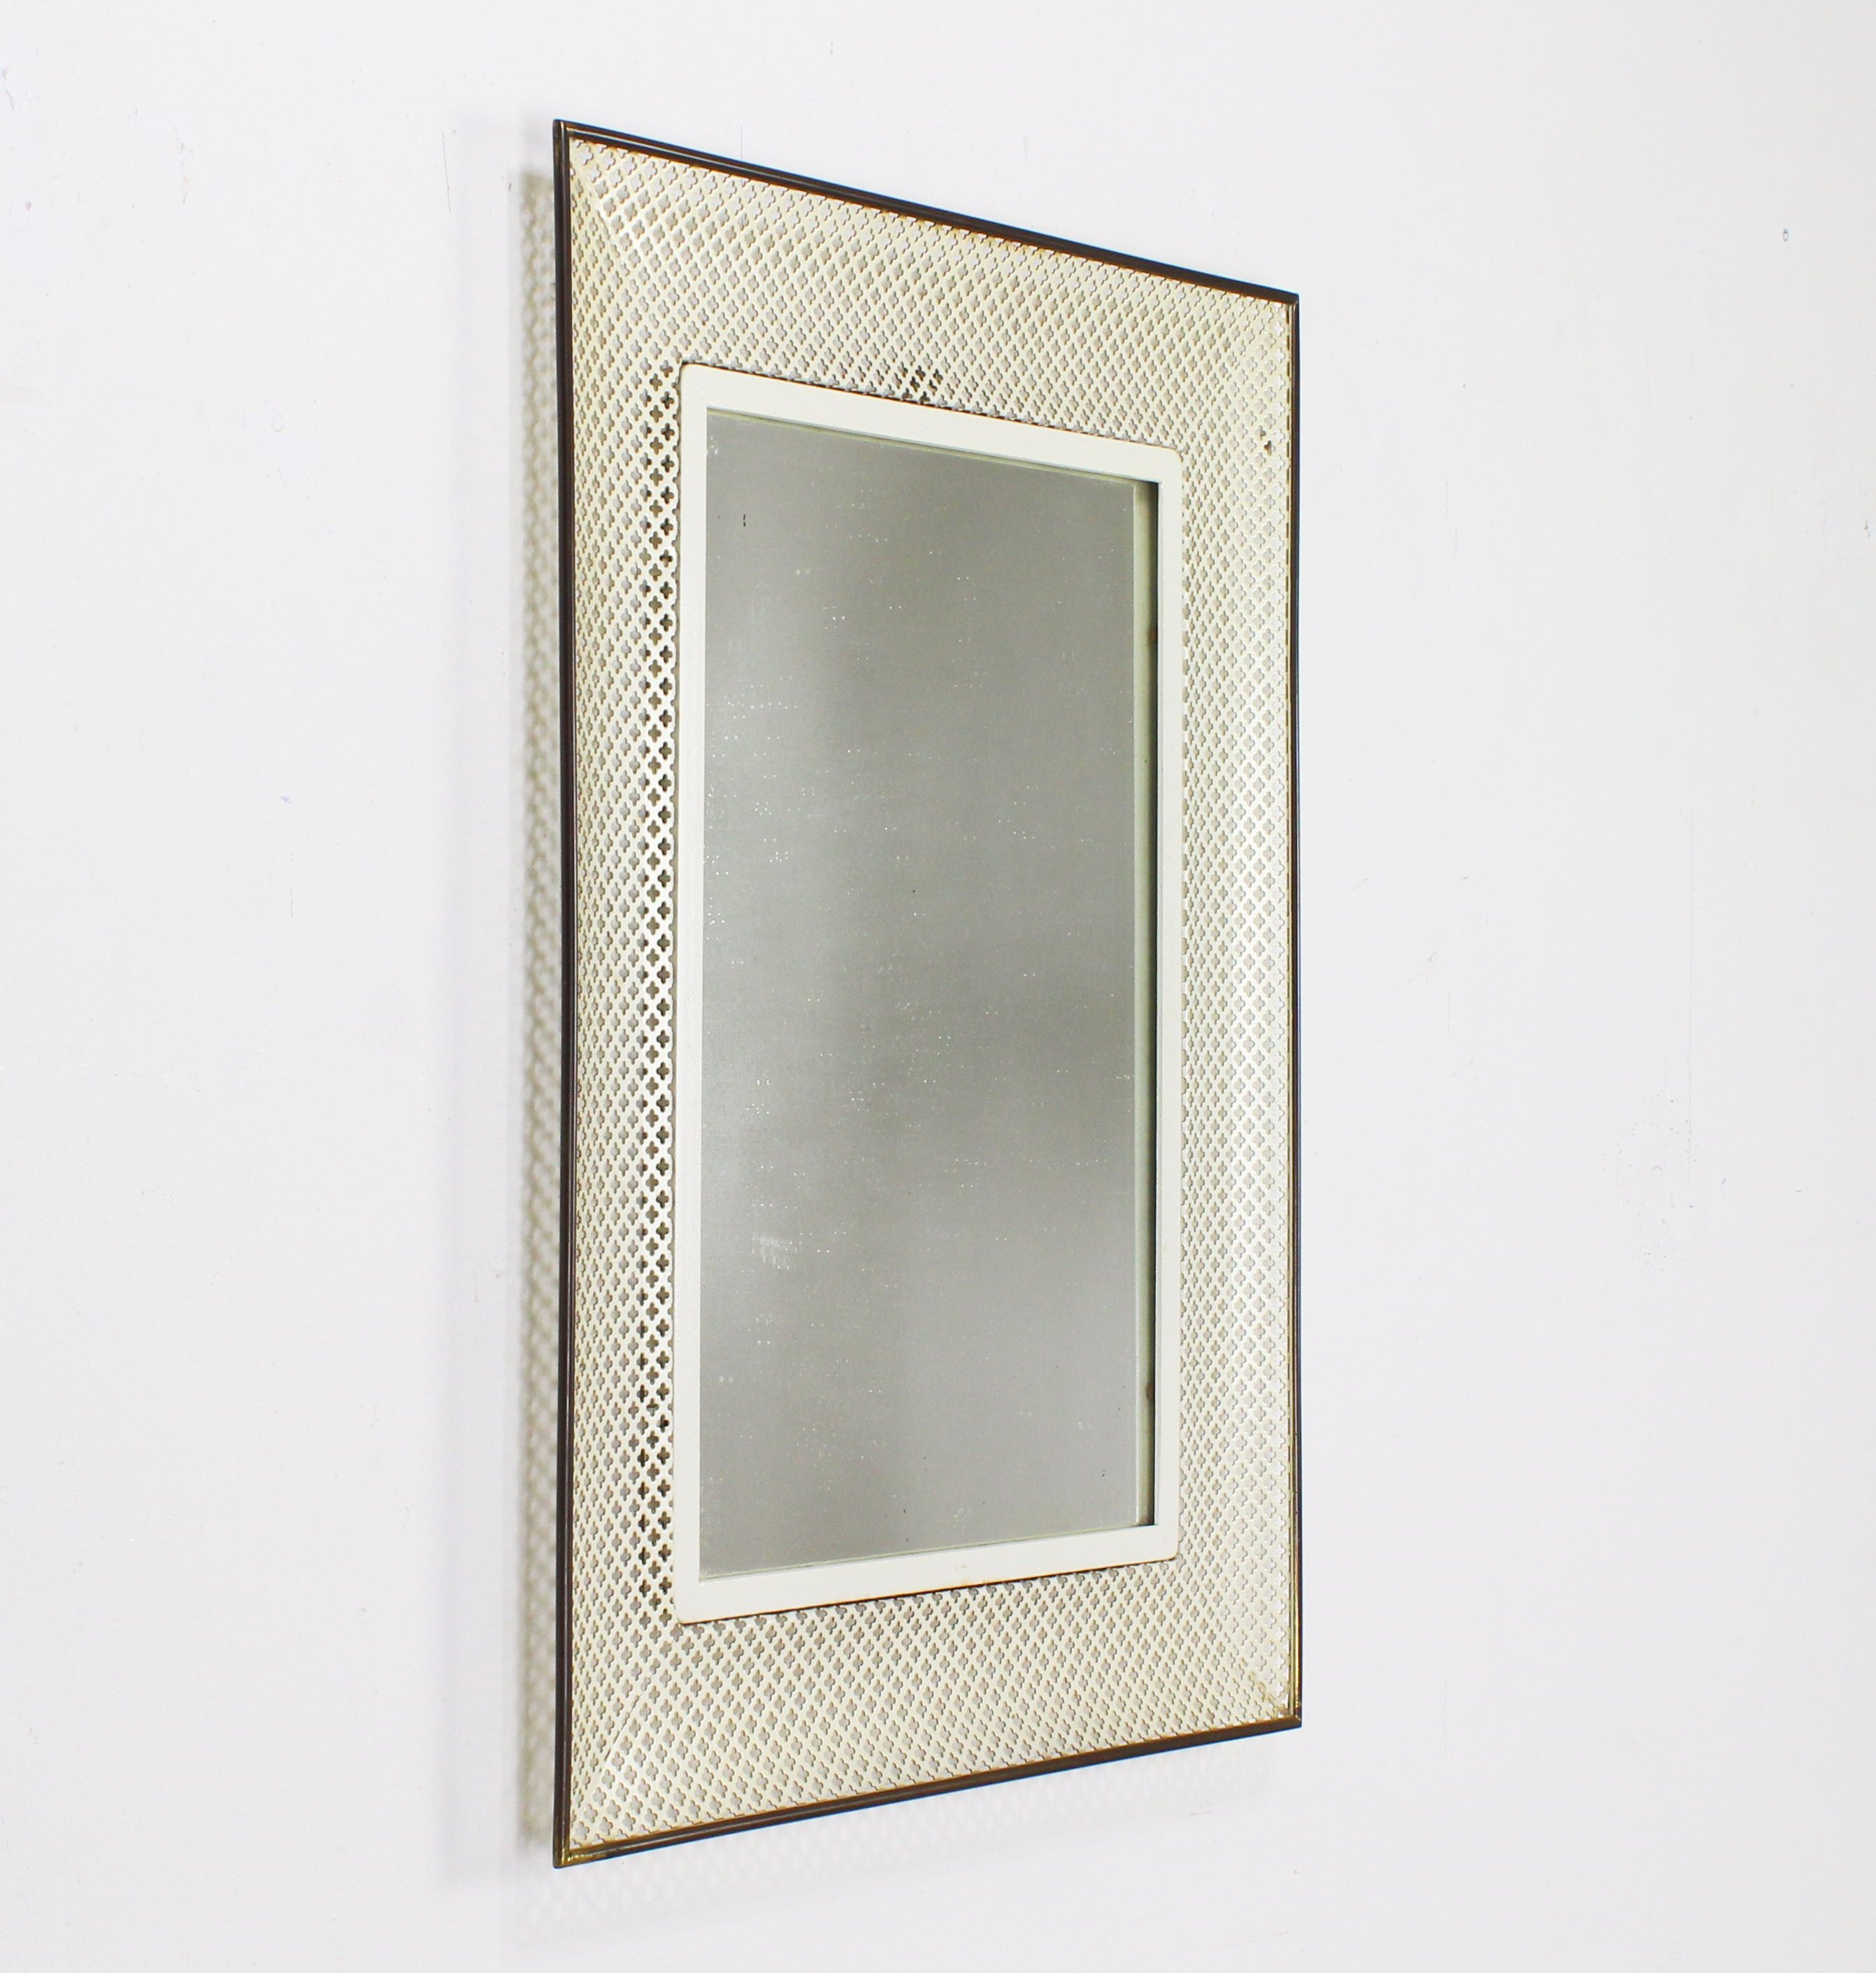 German Design Wall Mirror With Perforated Metal Frame 123175